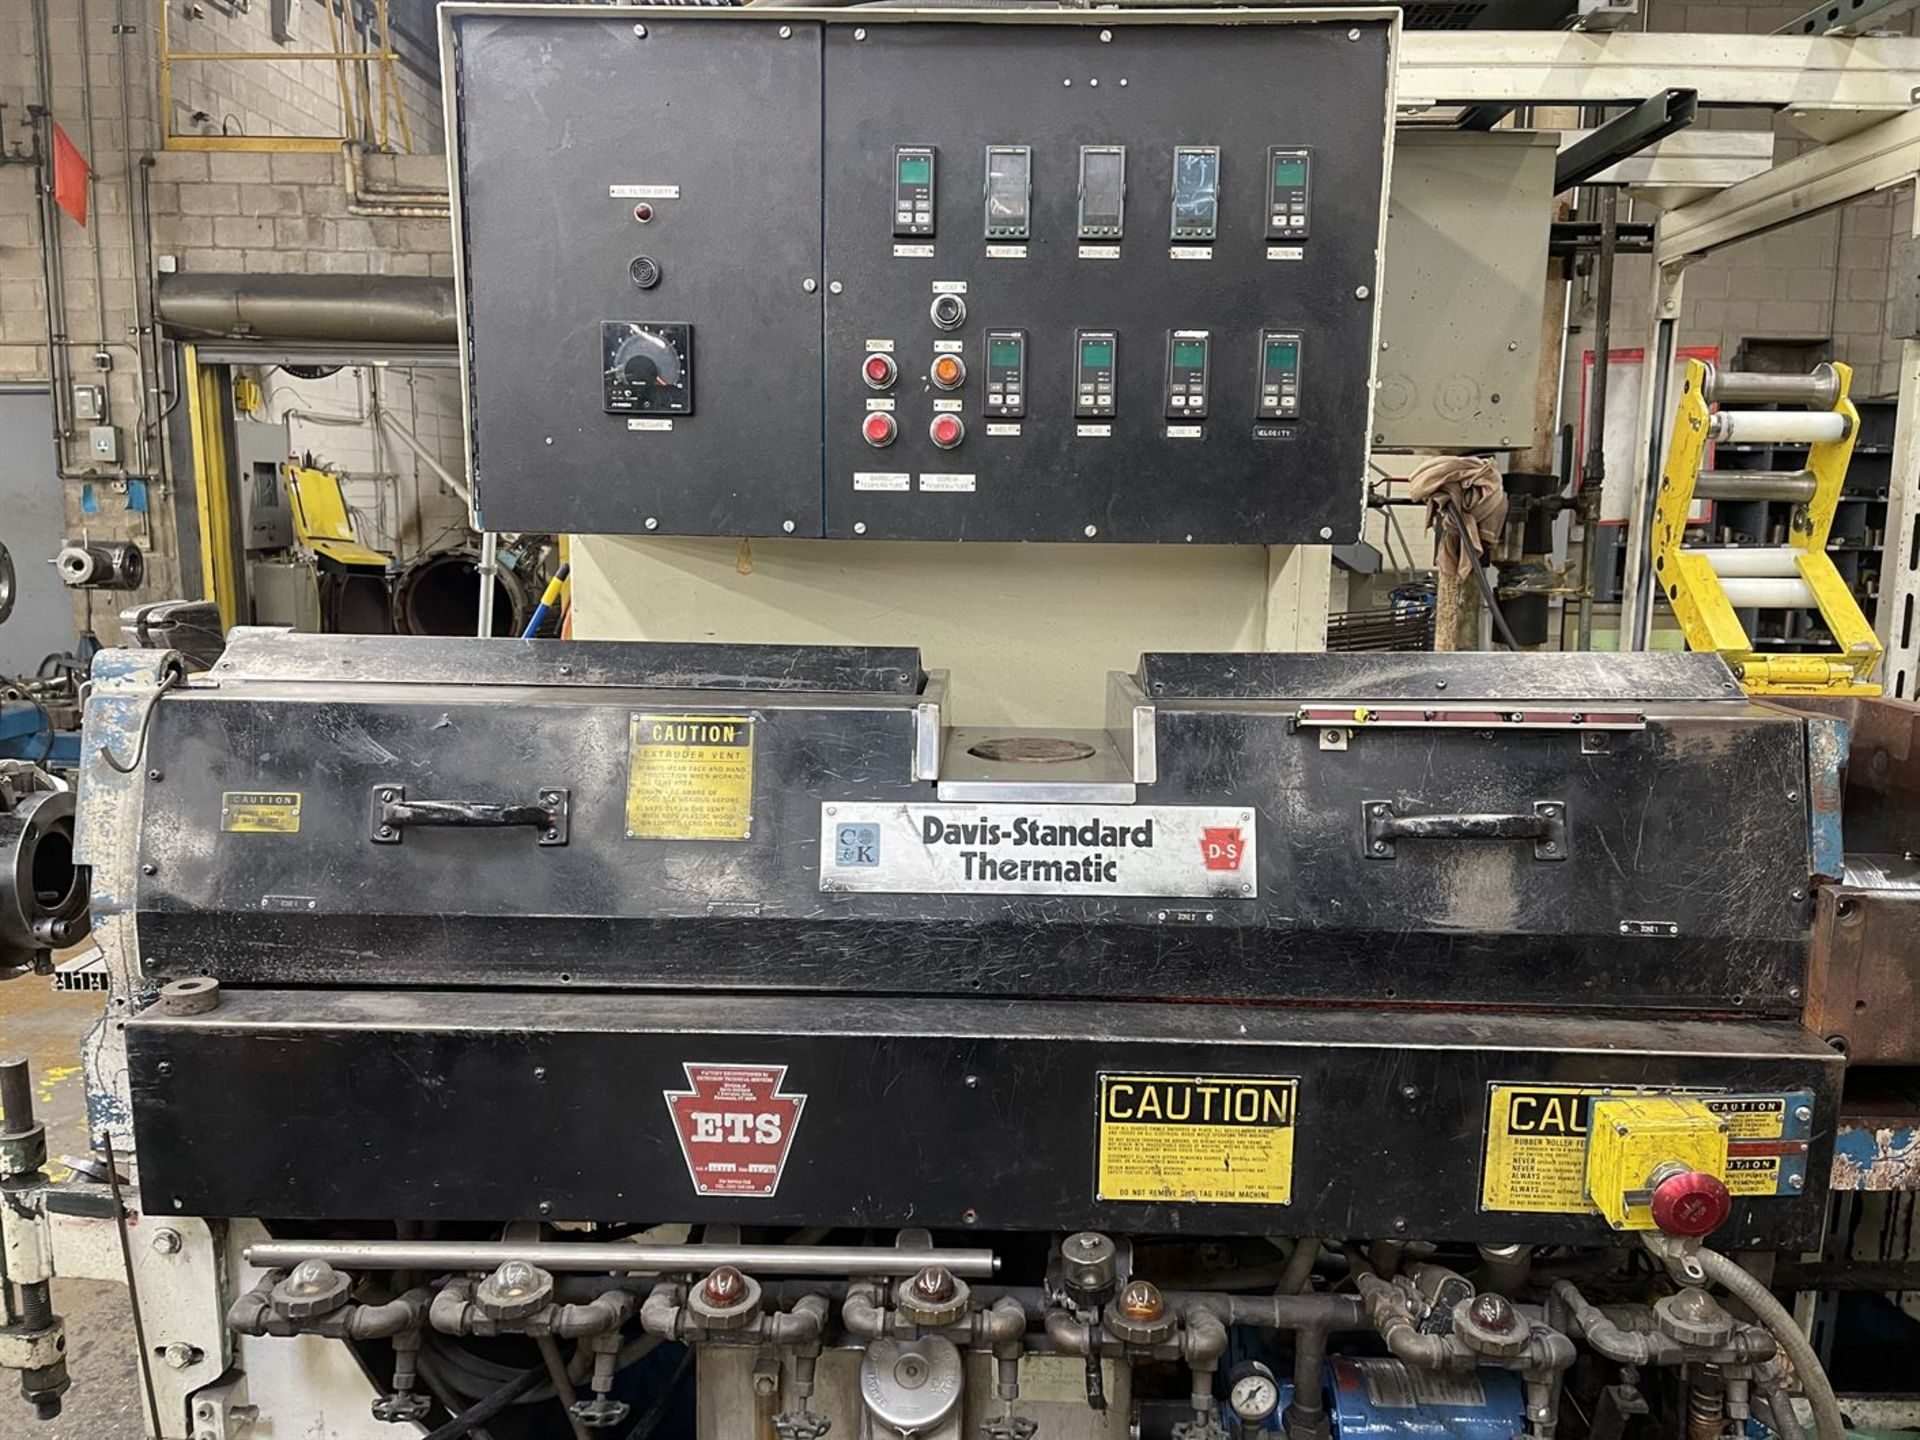 """DAVIS-STANDARD 350S 3.5"""" Extruder, s/n G-7391, 35IN35, 17.39 Gear Ratio, 75HP, 66 RPM, (Side Head - Image 3 of 7"""